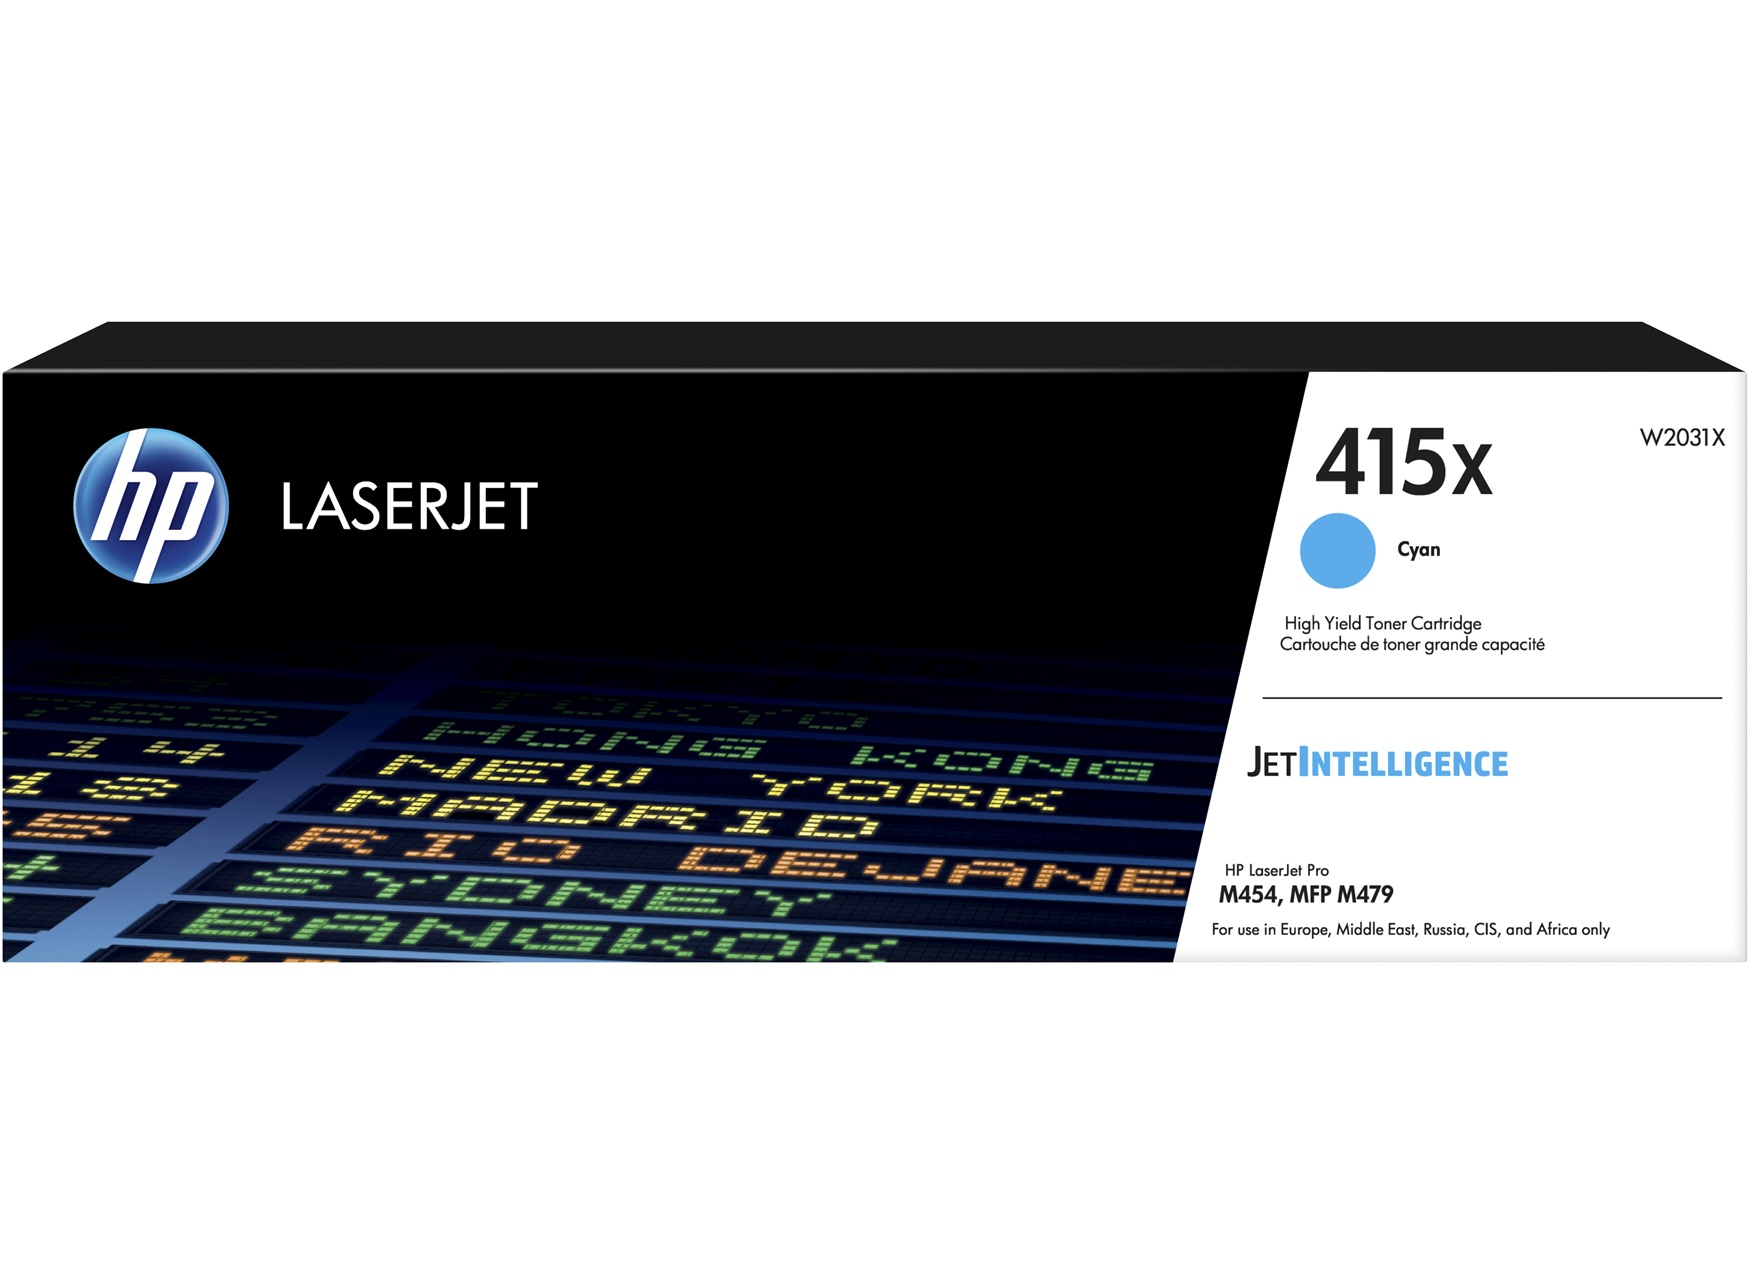 HP 415X Cyan LaserJet Toner Cartridge, W2031X